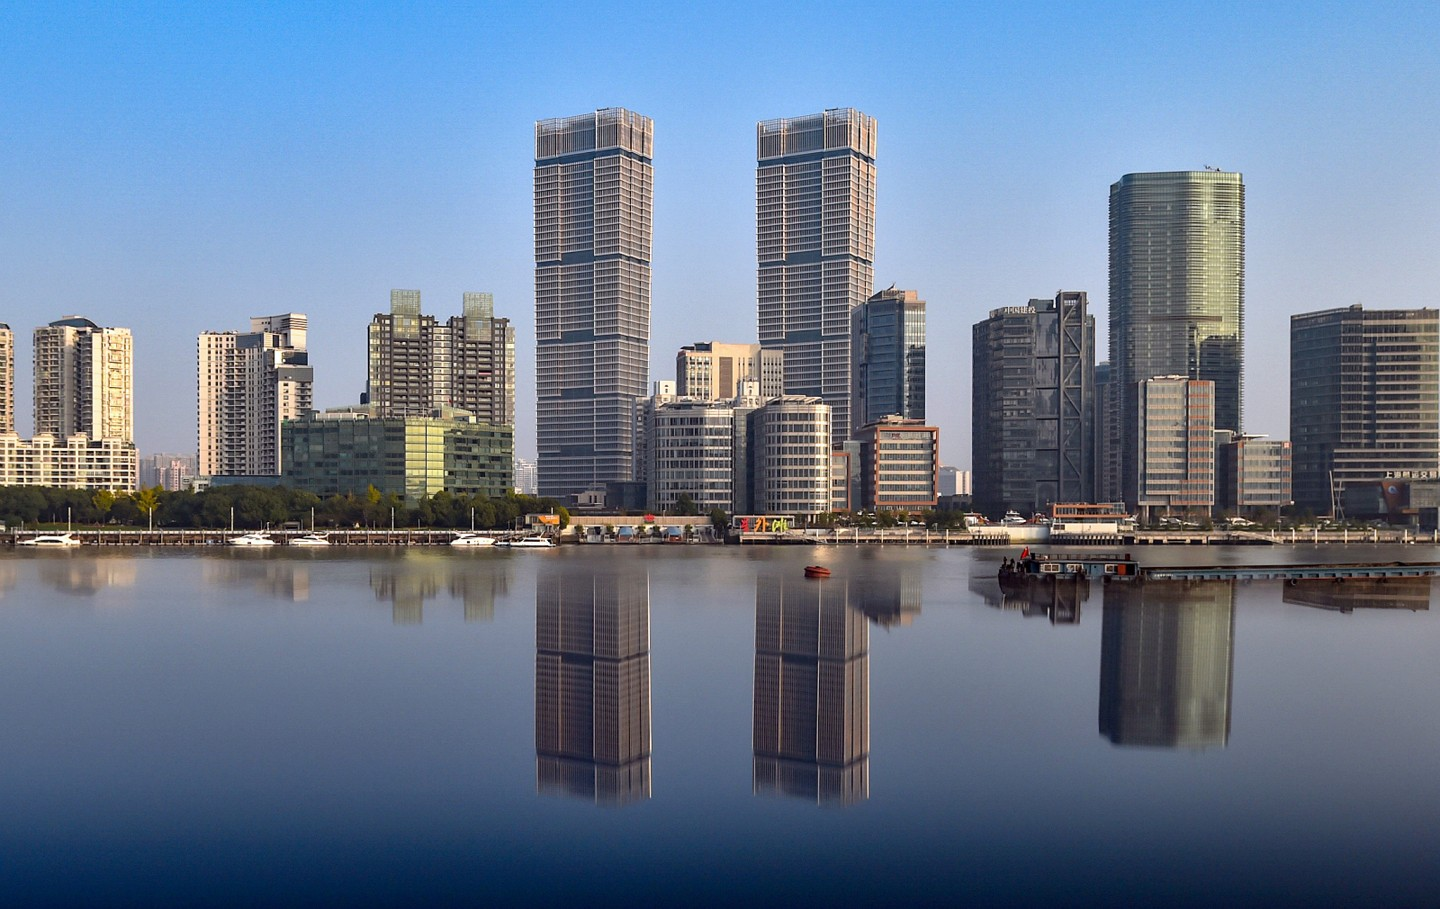 ASEAN's investments in China are on the rise: CapitaLand (a real eastate company in Singapore) acquired Shanghai's tallest twin towers through a 50:50 joint venture between GIC and Raffles City China Investment Partners III (RCCIP III) fund, which will become the Group's third Raffles City integrated development in Shanghai. (CapitaLand)